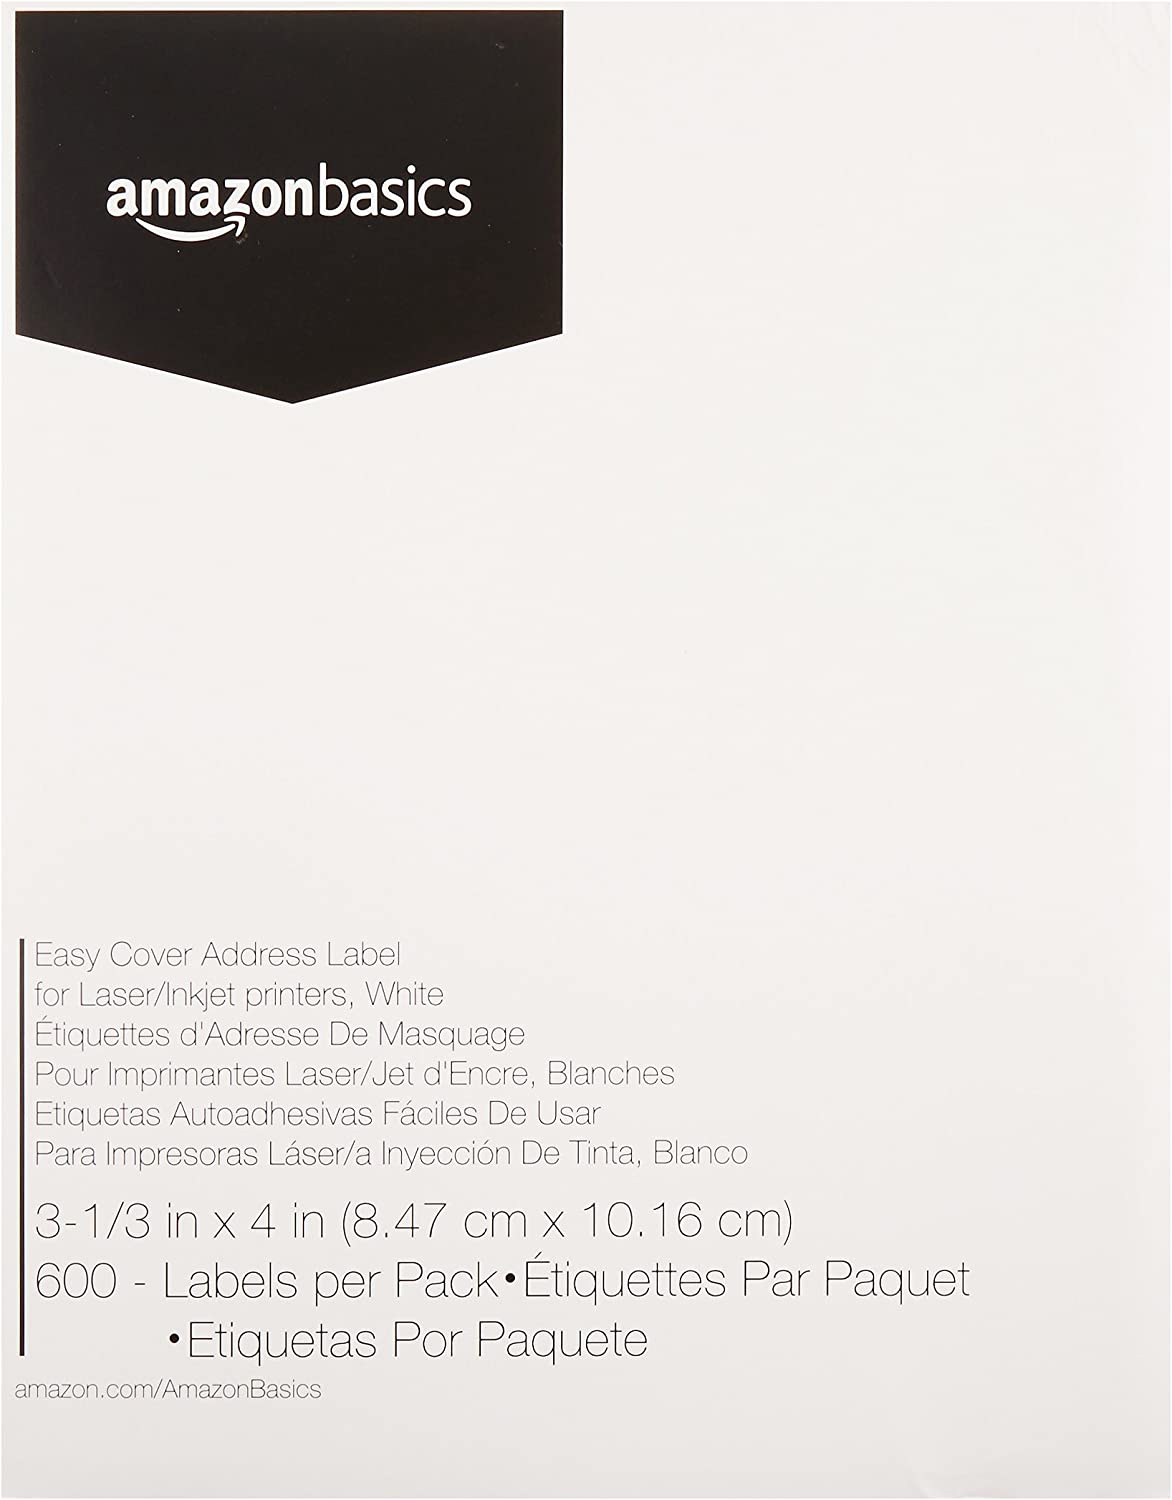 AmazonBasics Easy Cover Address Labels for laser/Inkjet Printers, White, 3-1/3 x 4 Inch Label, 600 Labels